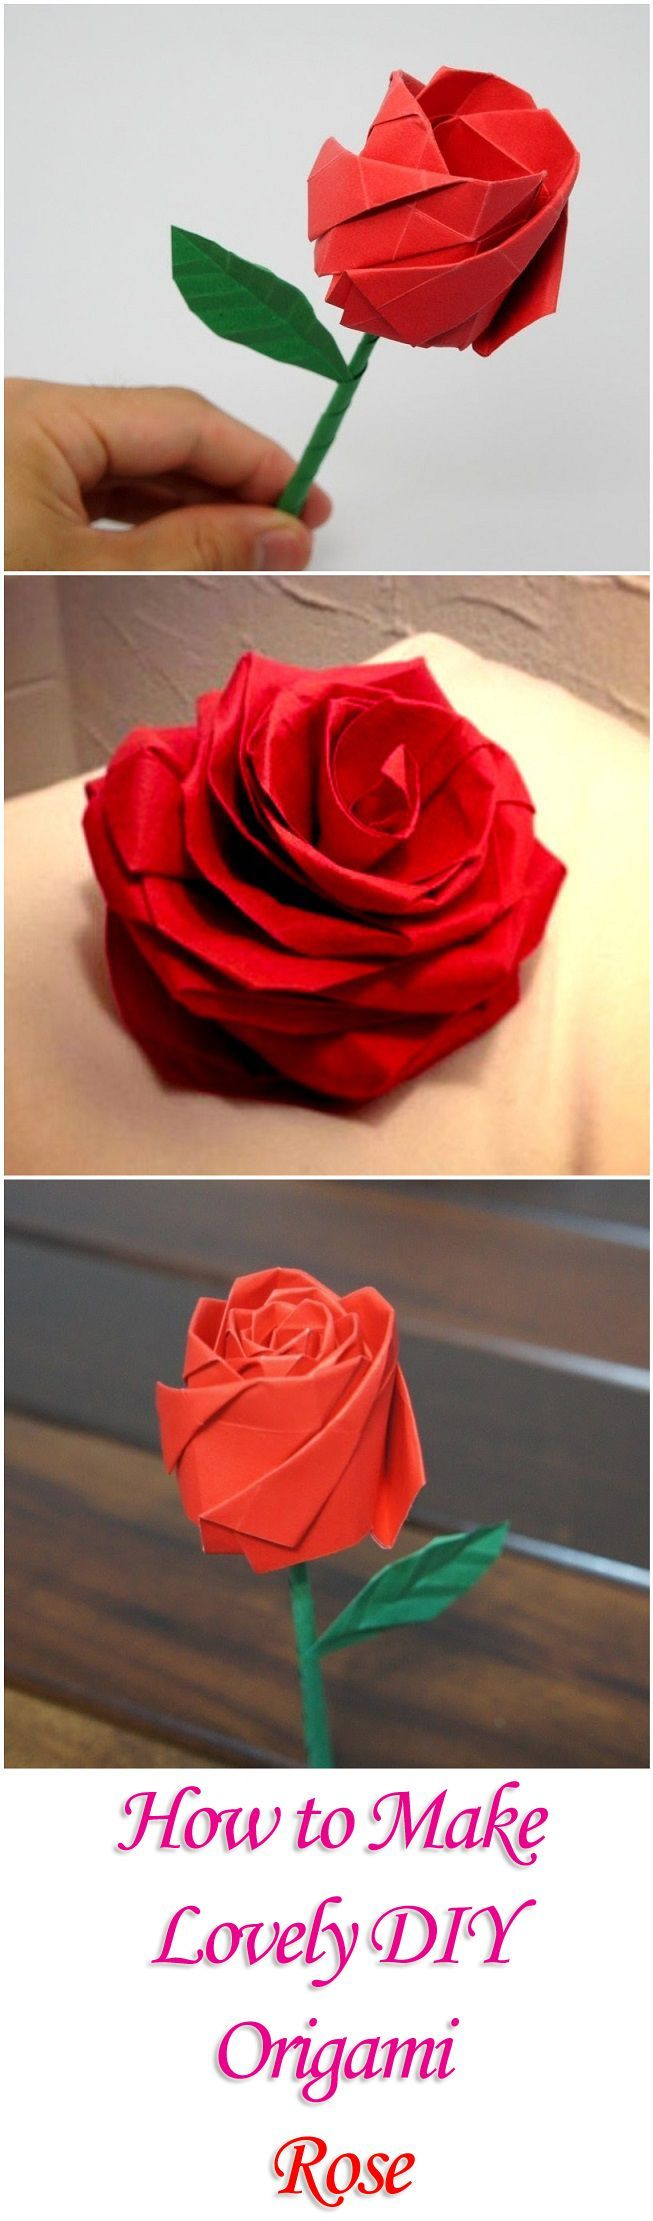 How to Make Lovely DIY Origami Rose